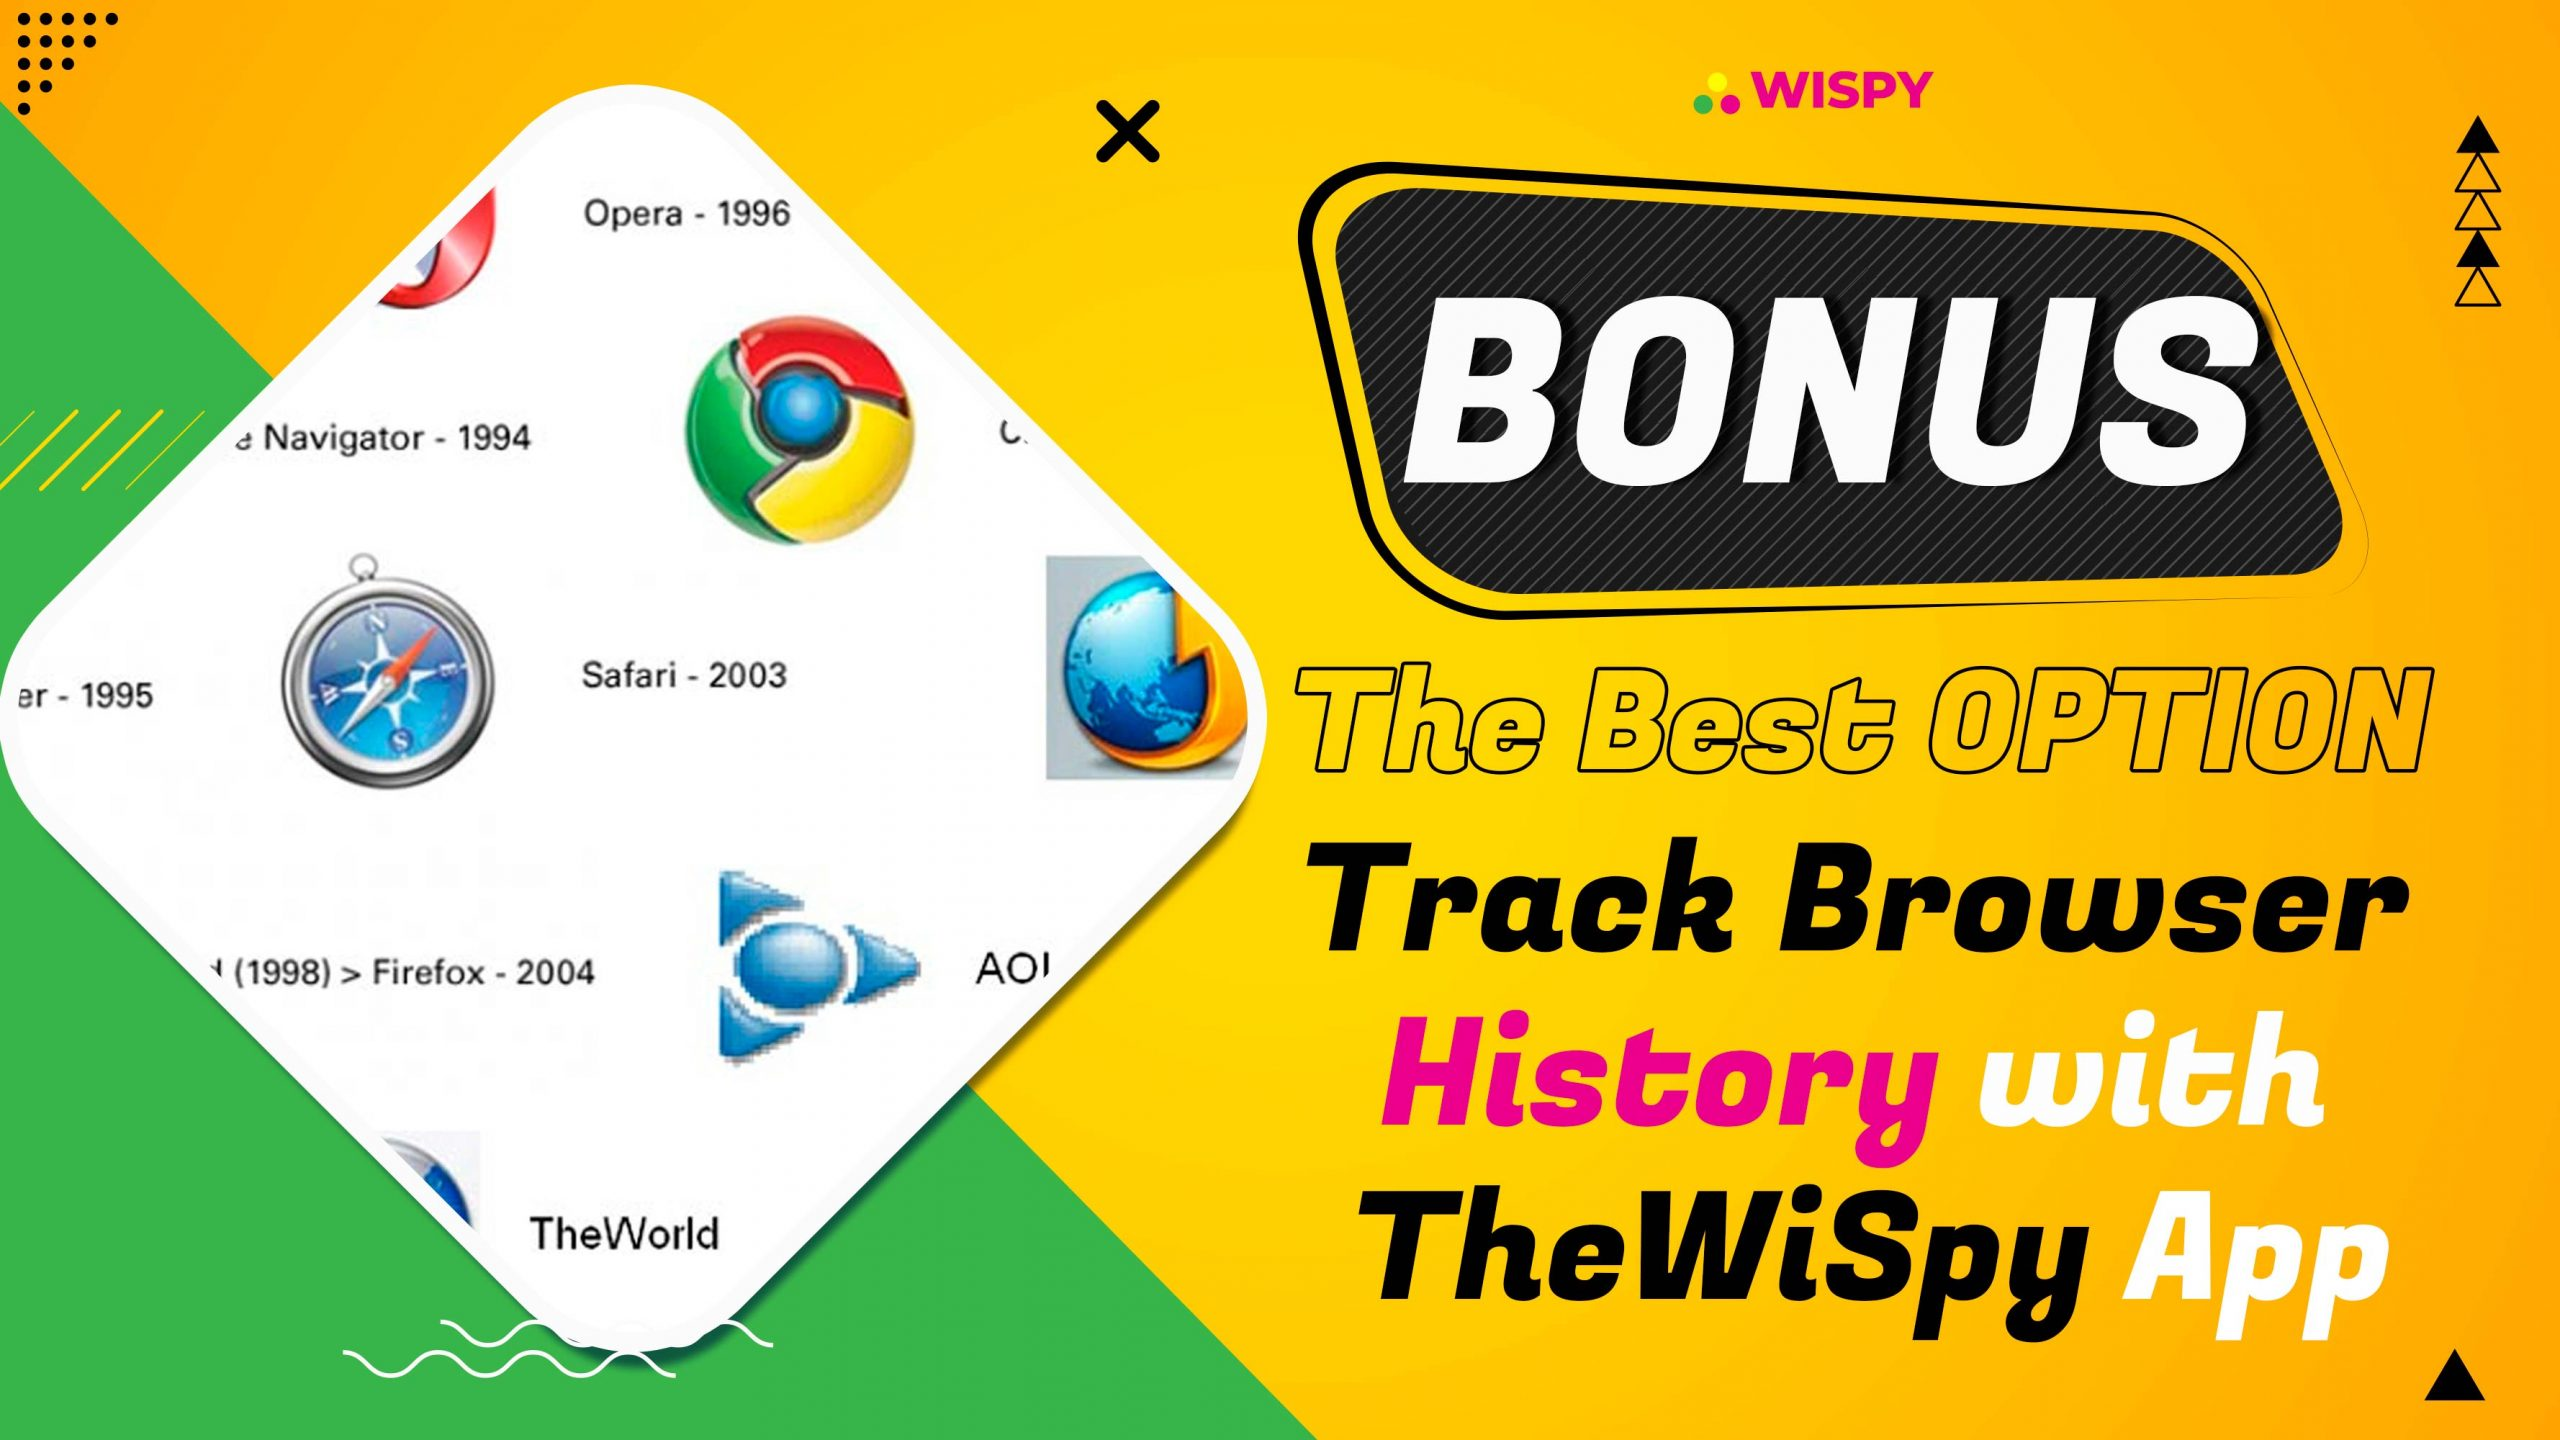 BONUS: The Best OPTION - Track Browser History with TheWiSpy App: